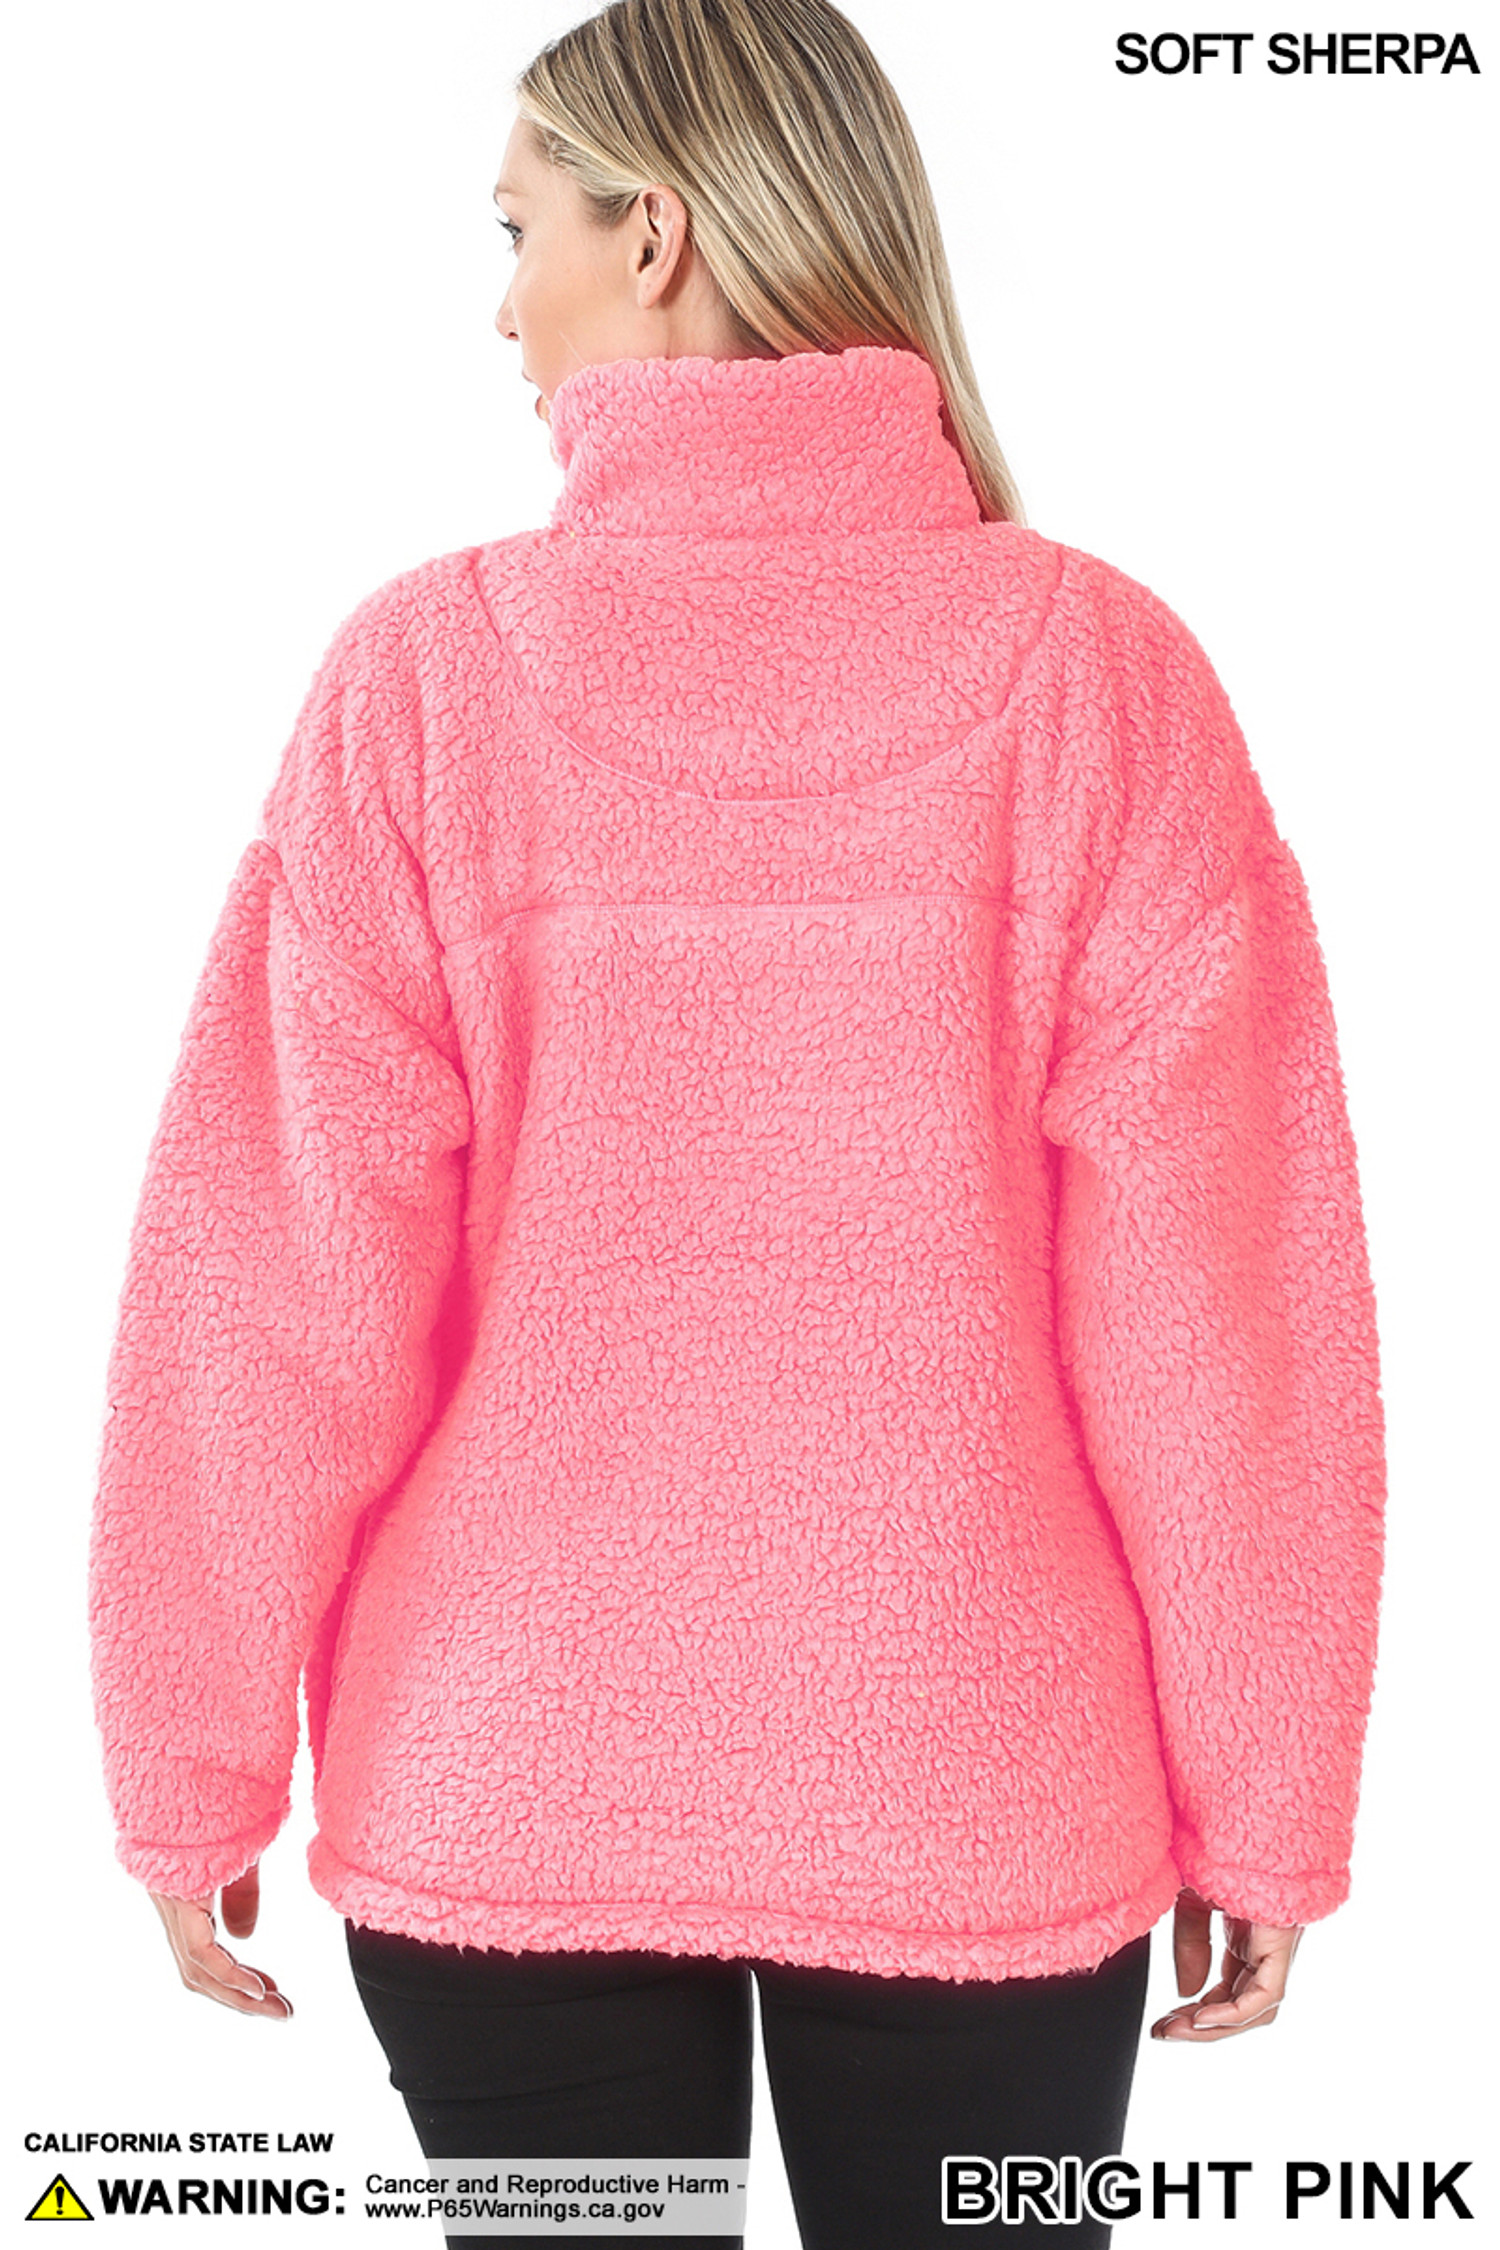 Back side image of Bright Pink Sherpa Half Zip Pullover with Side Pockets